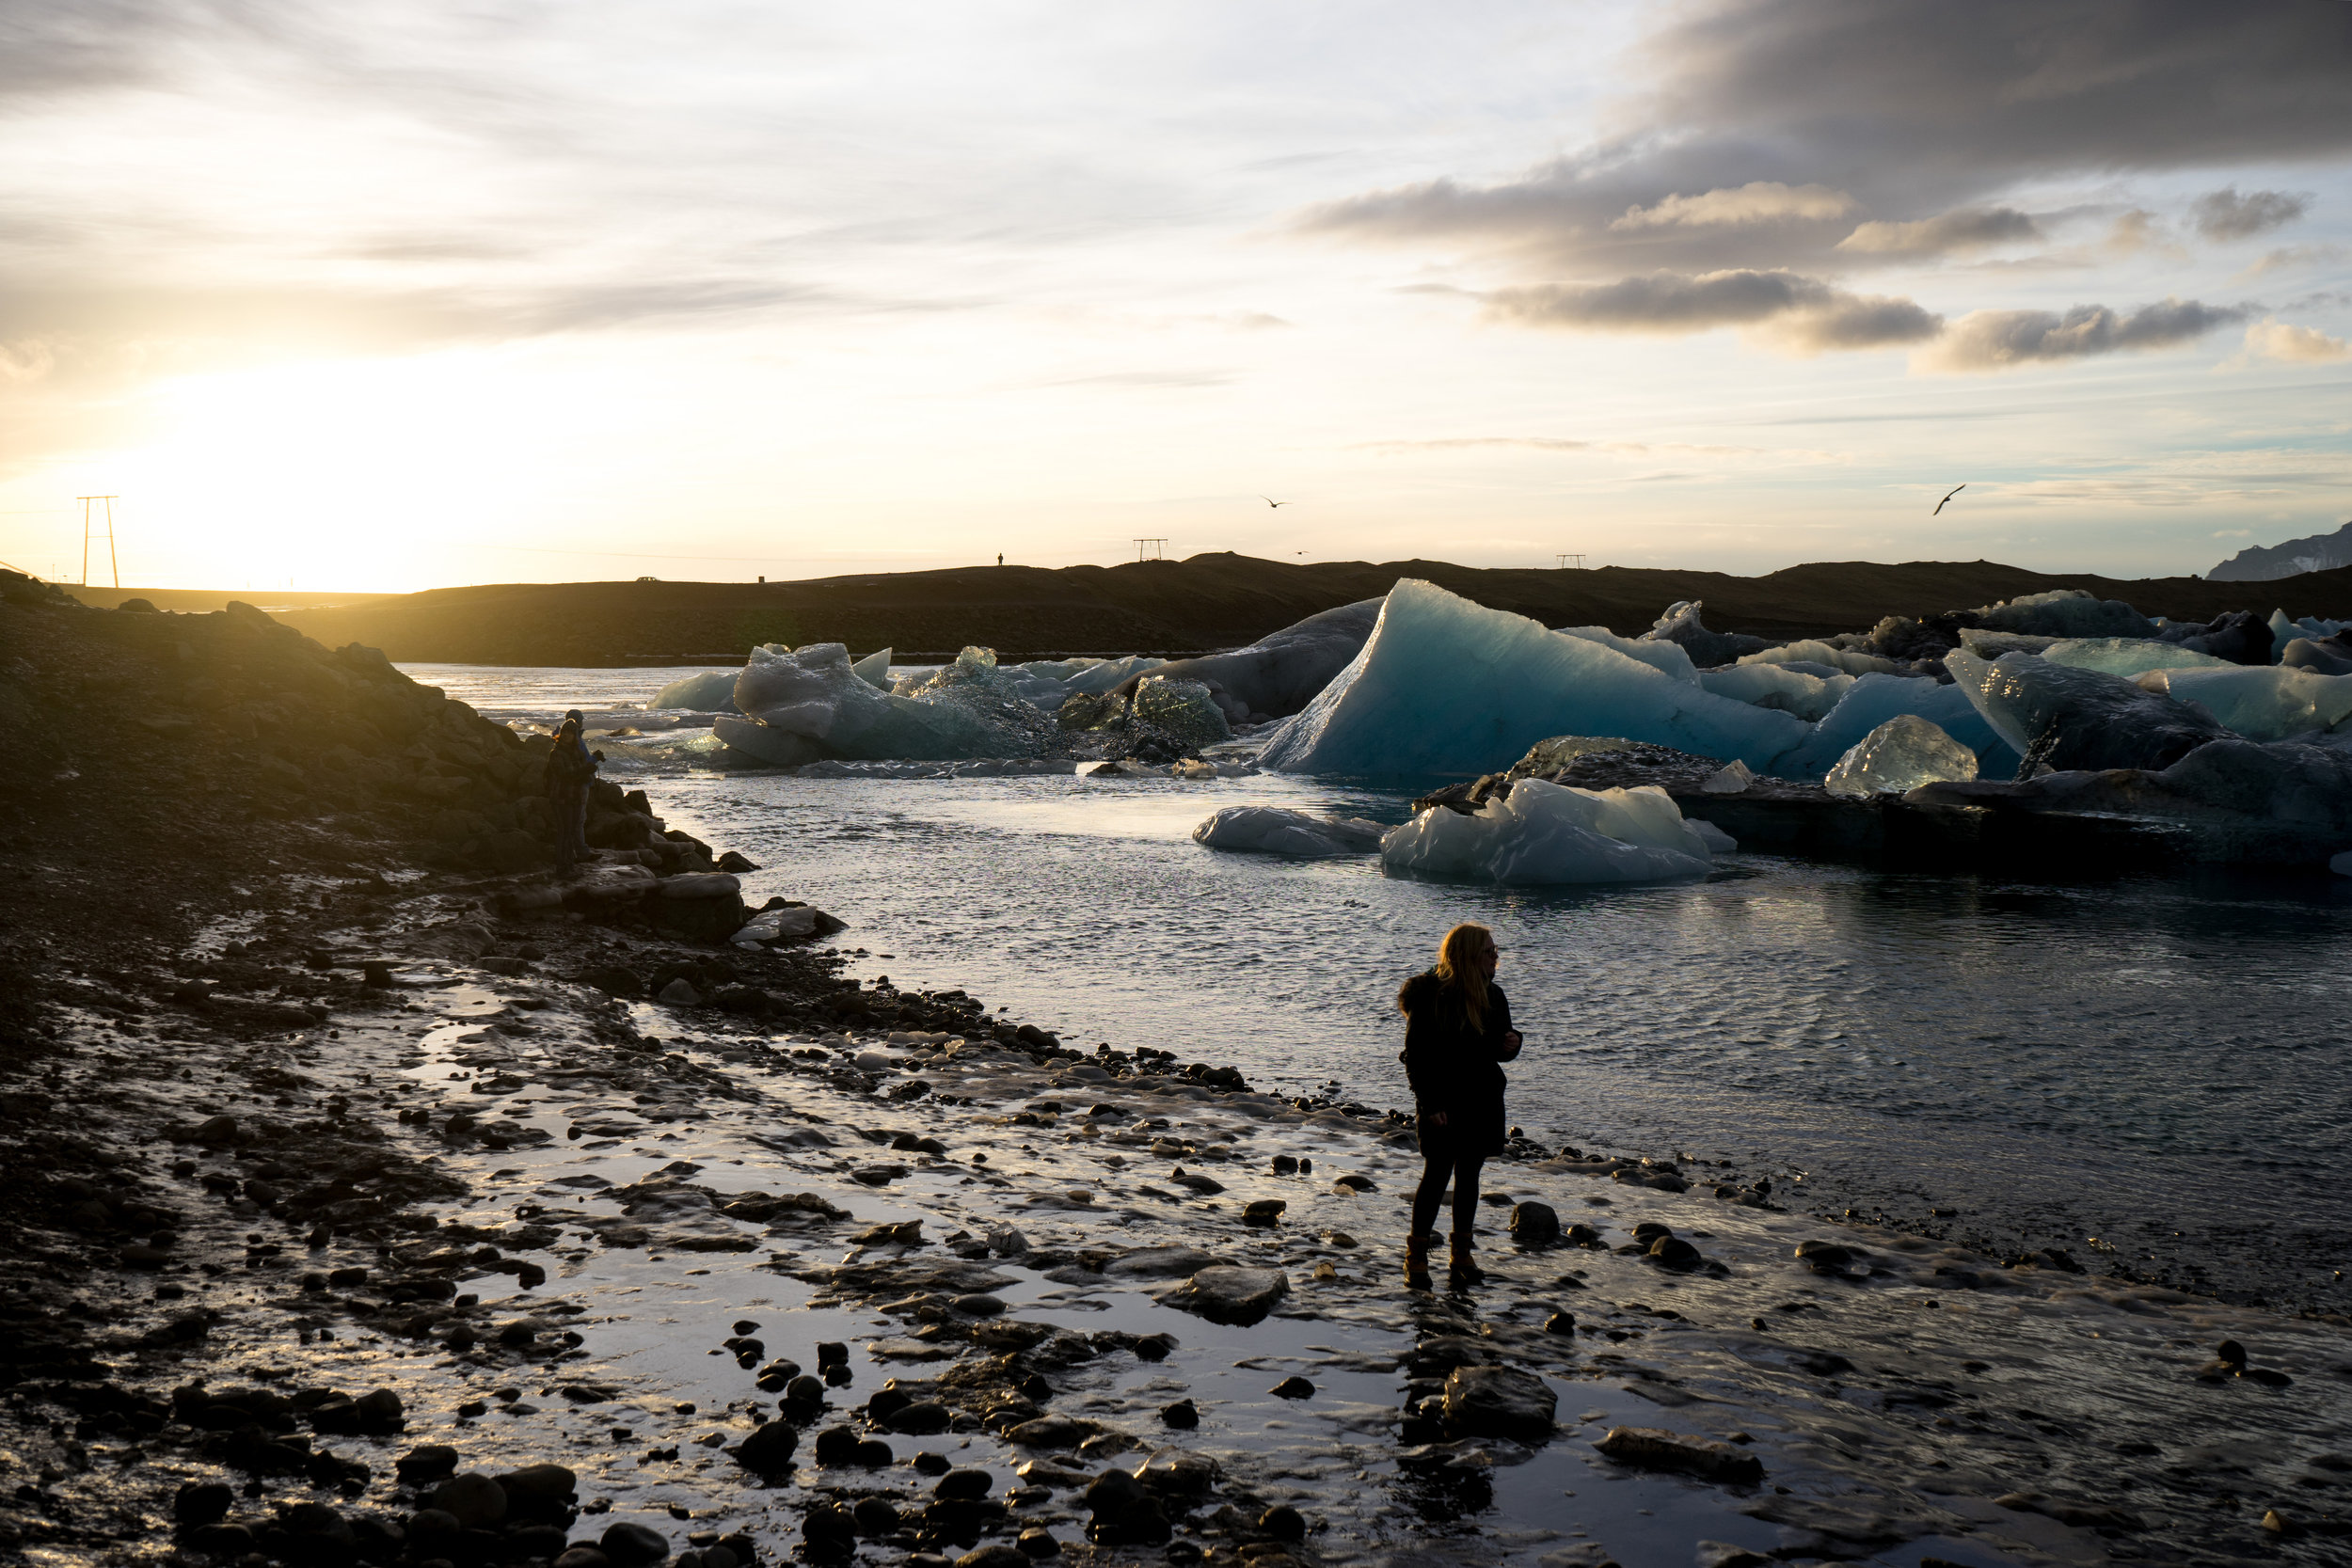 Maggie a la Mode - Why You Need to Visit Iceland in Winter Crytsal Ice Caves Jökulsárlón Glacier Lagoon.jpg